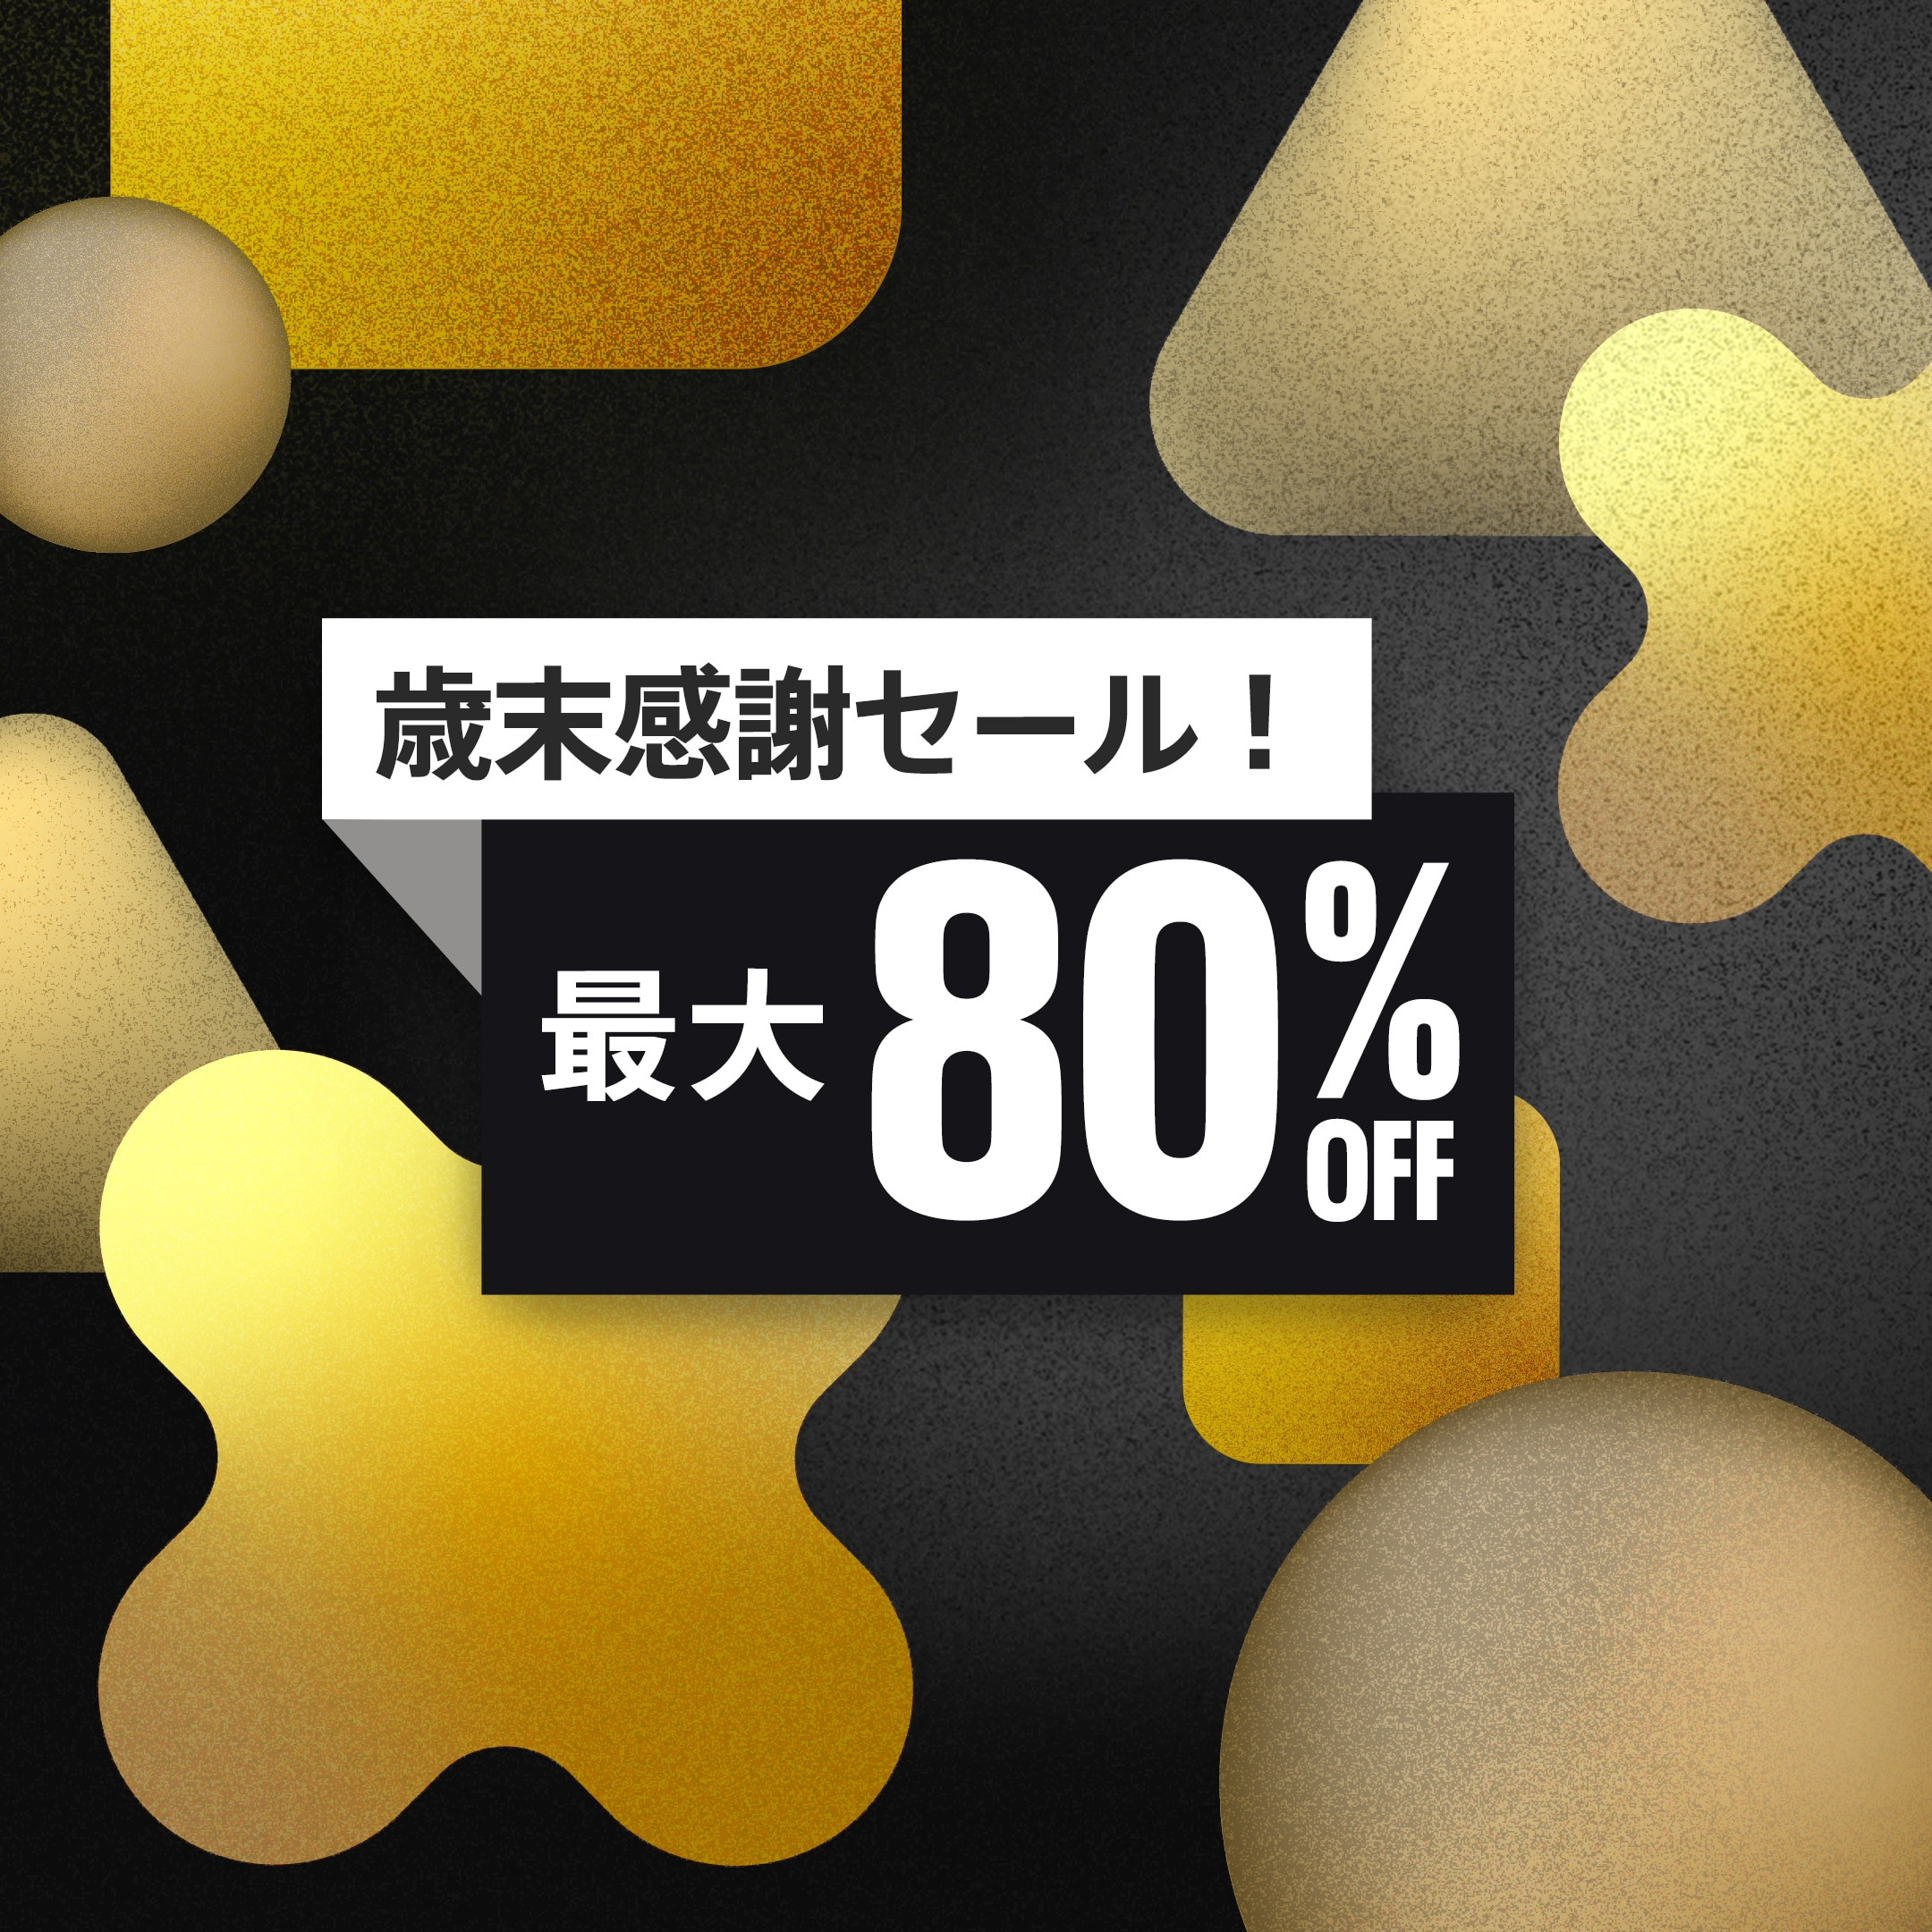 [PROMO] End of Year Deals 20 - WM